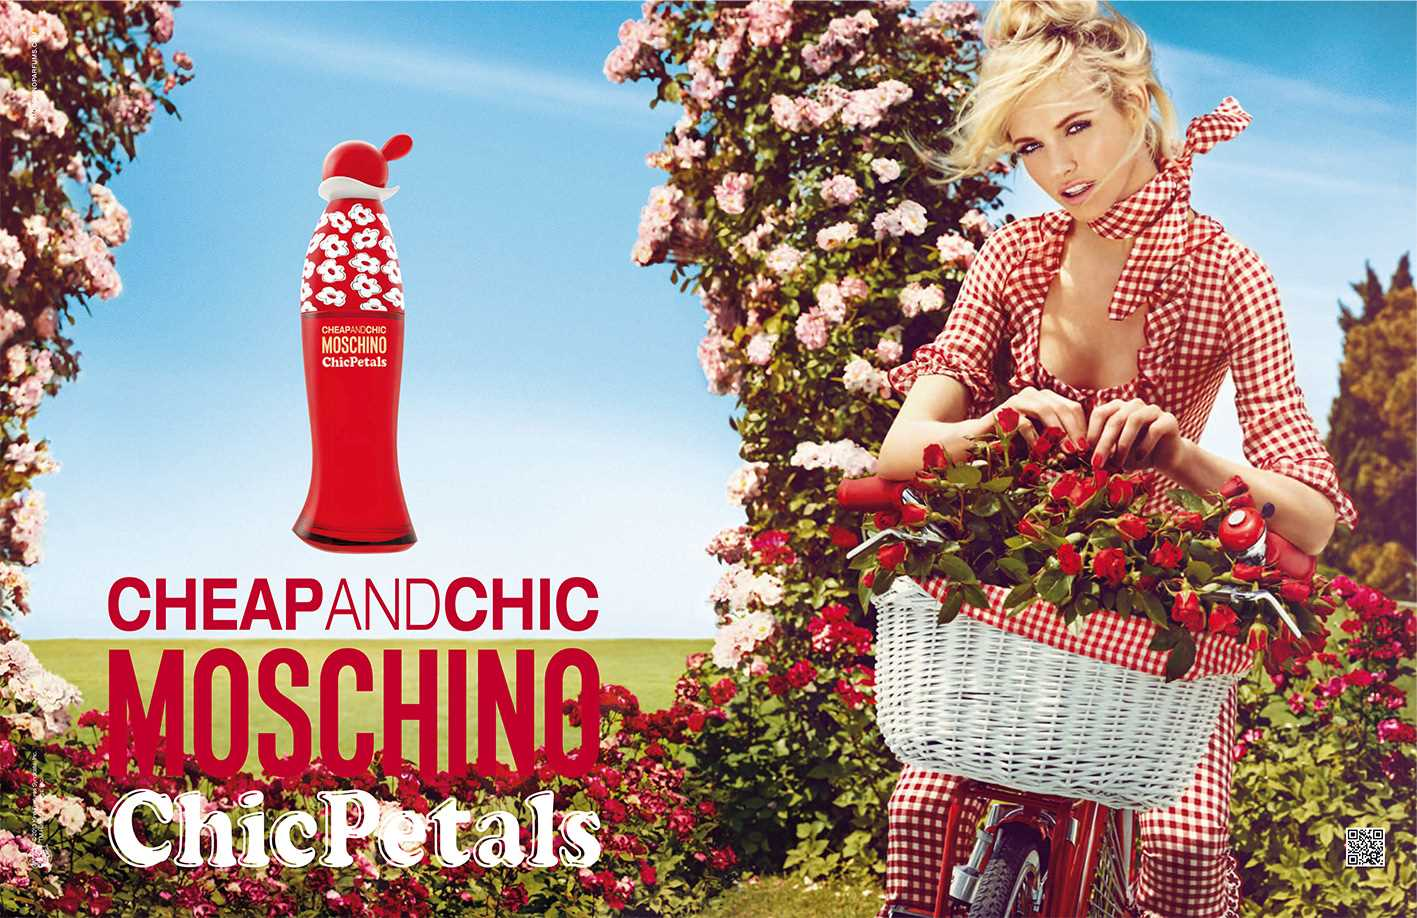 Advertising Photography by Giampaolo Sgura